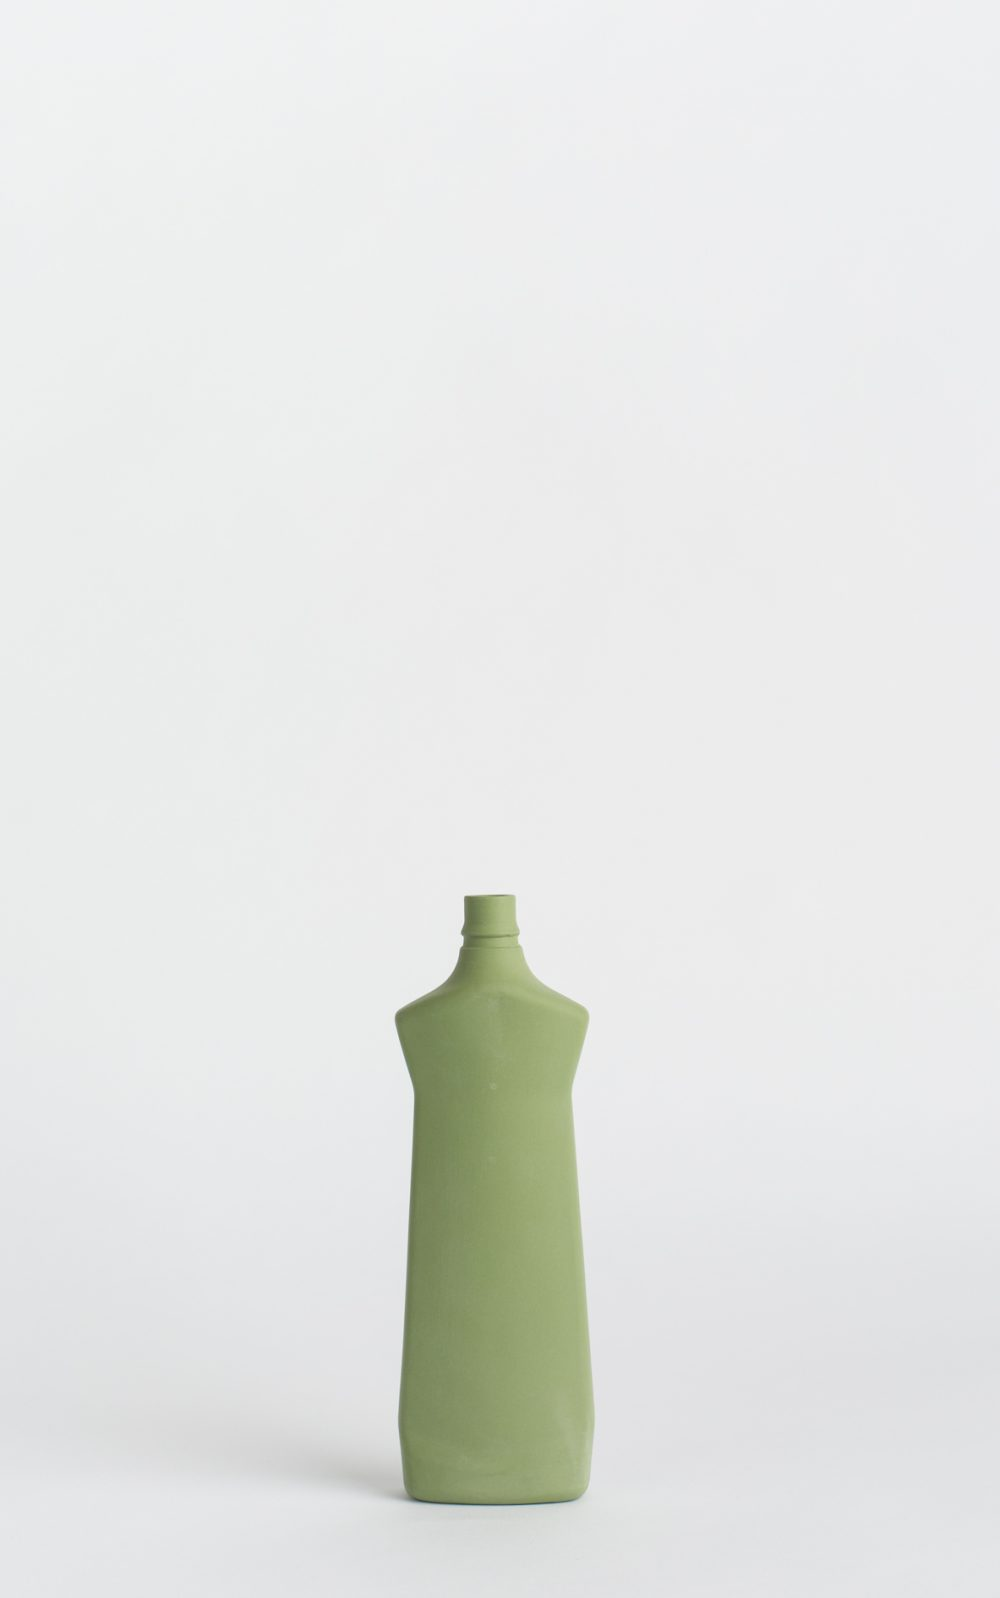 bottle vase #1 dark green